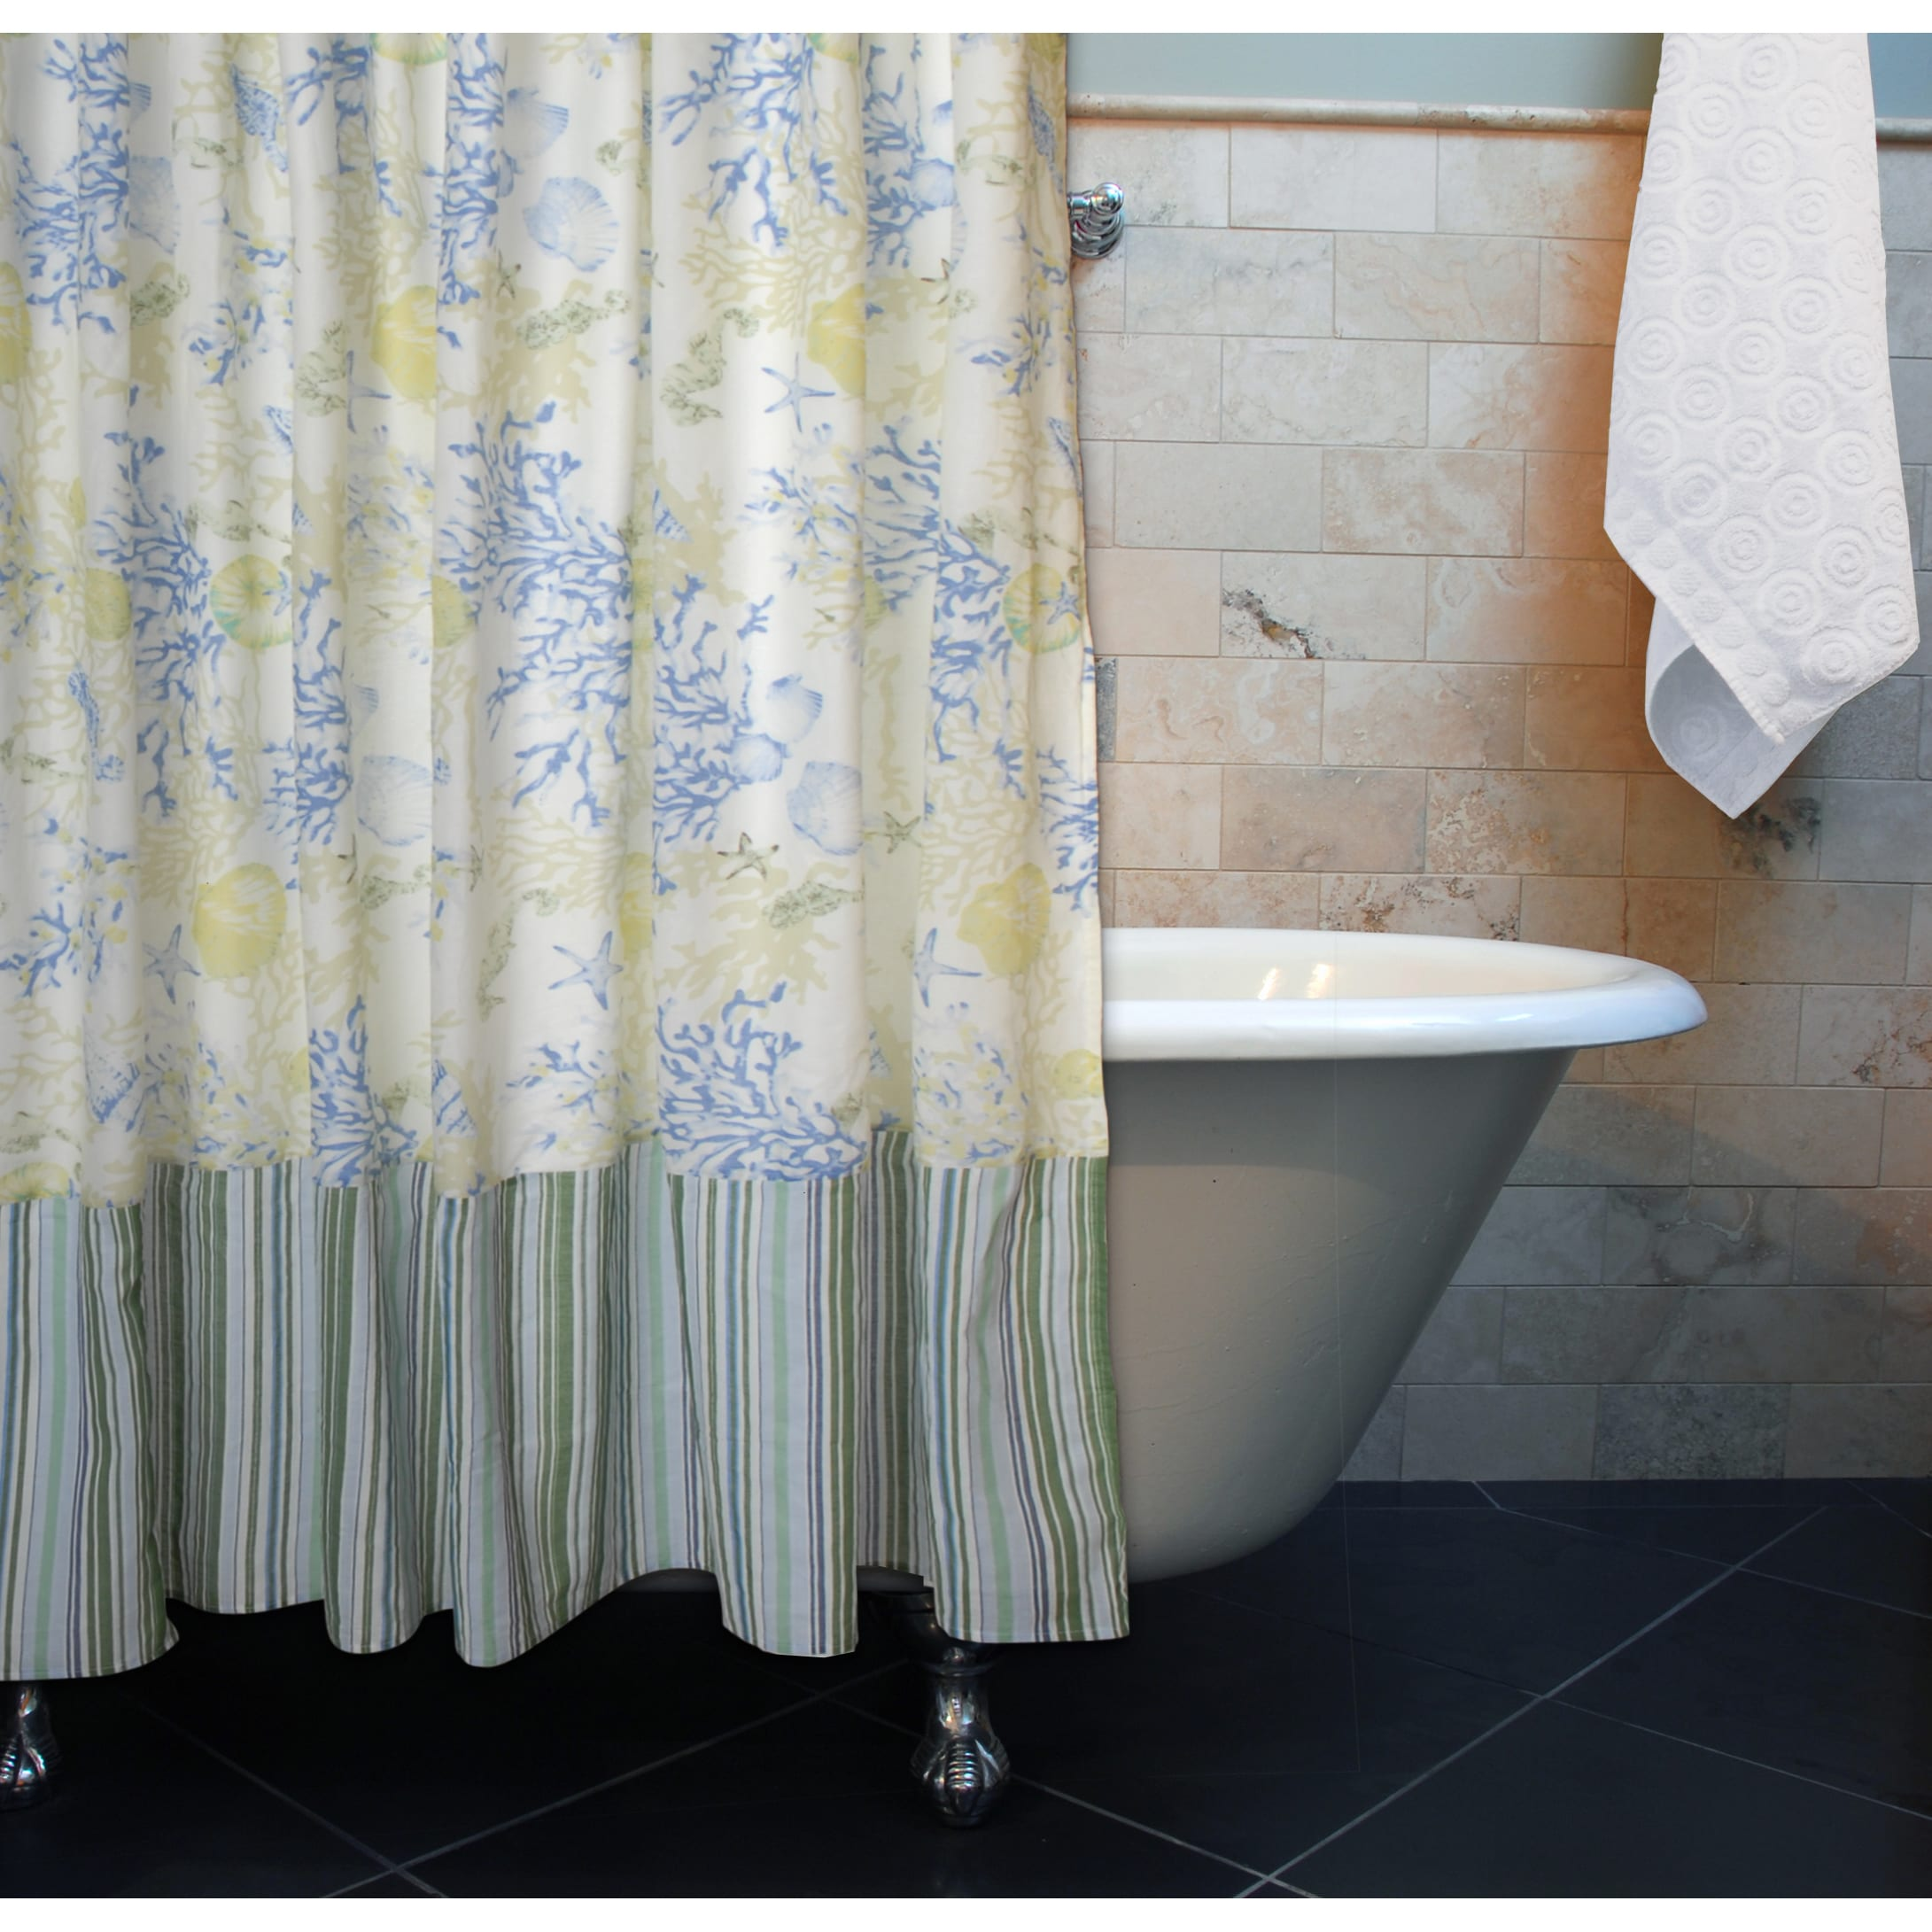 Round Shower Curtain Rods Shower Curtains for Man's Bathr